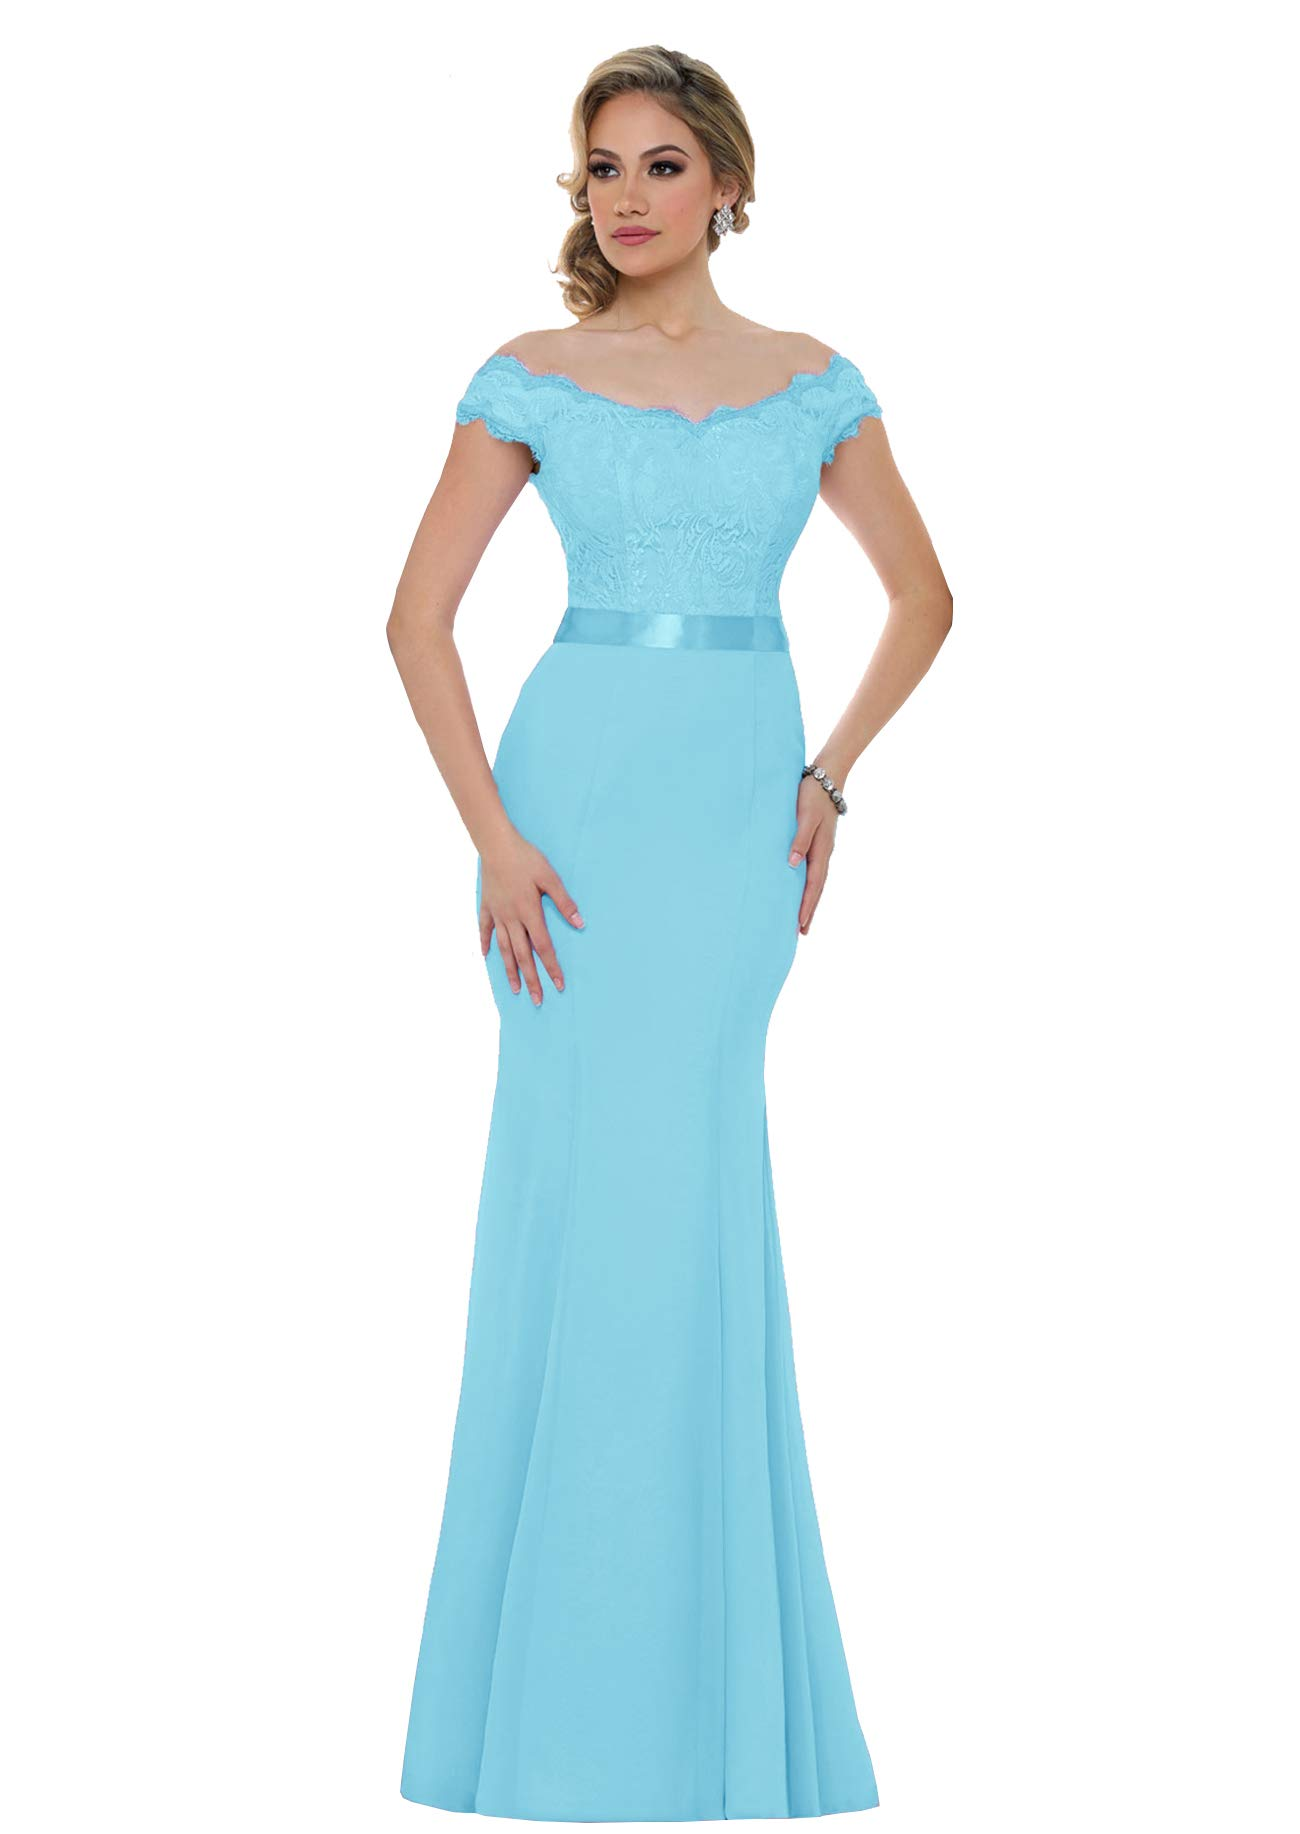 Mermaid Bridesmaid Dresses For Women Lace Wedding Evening Formal Gowns Long Party S015 2 Ice Blue